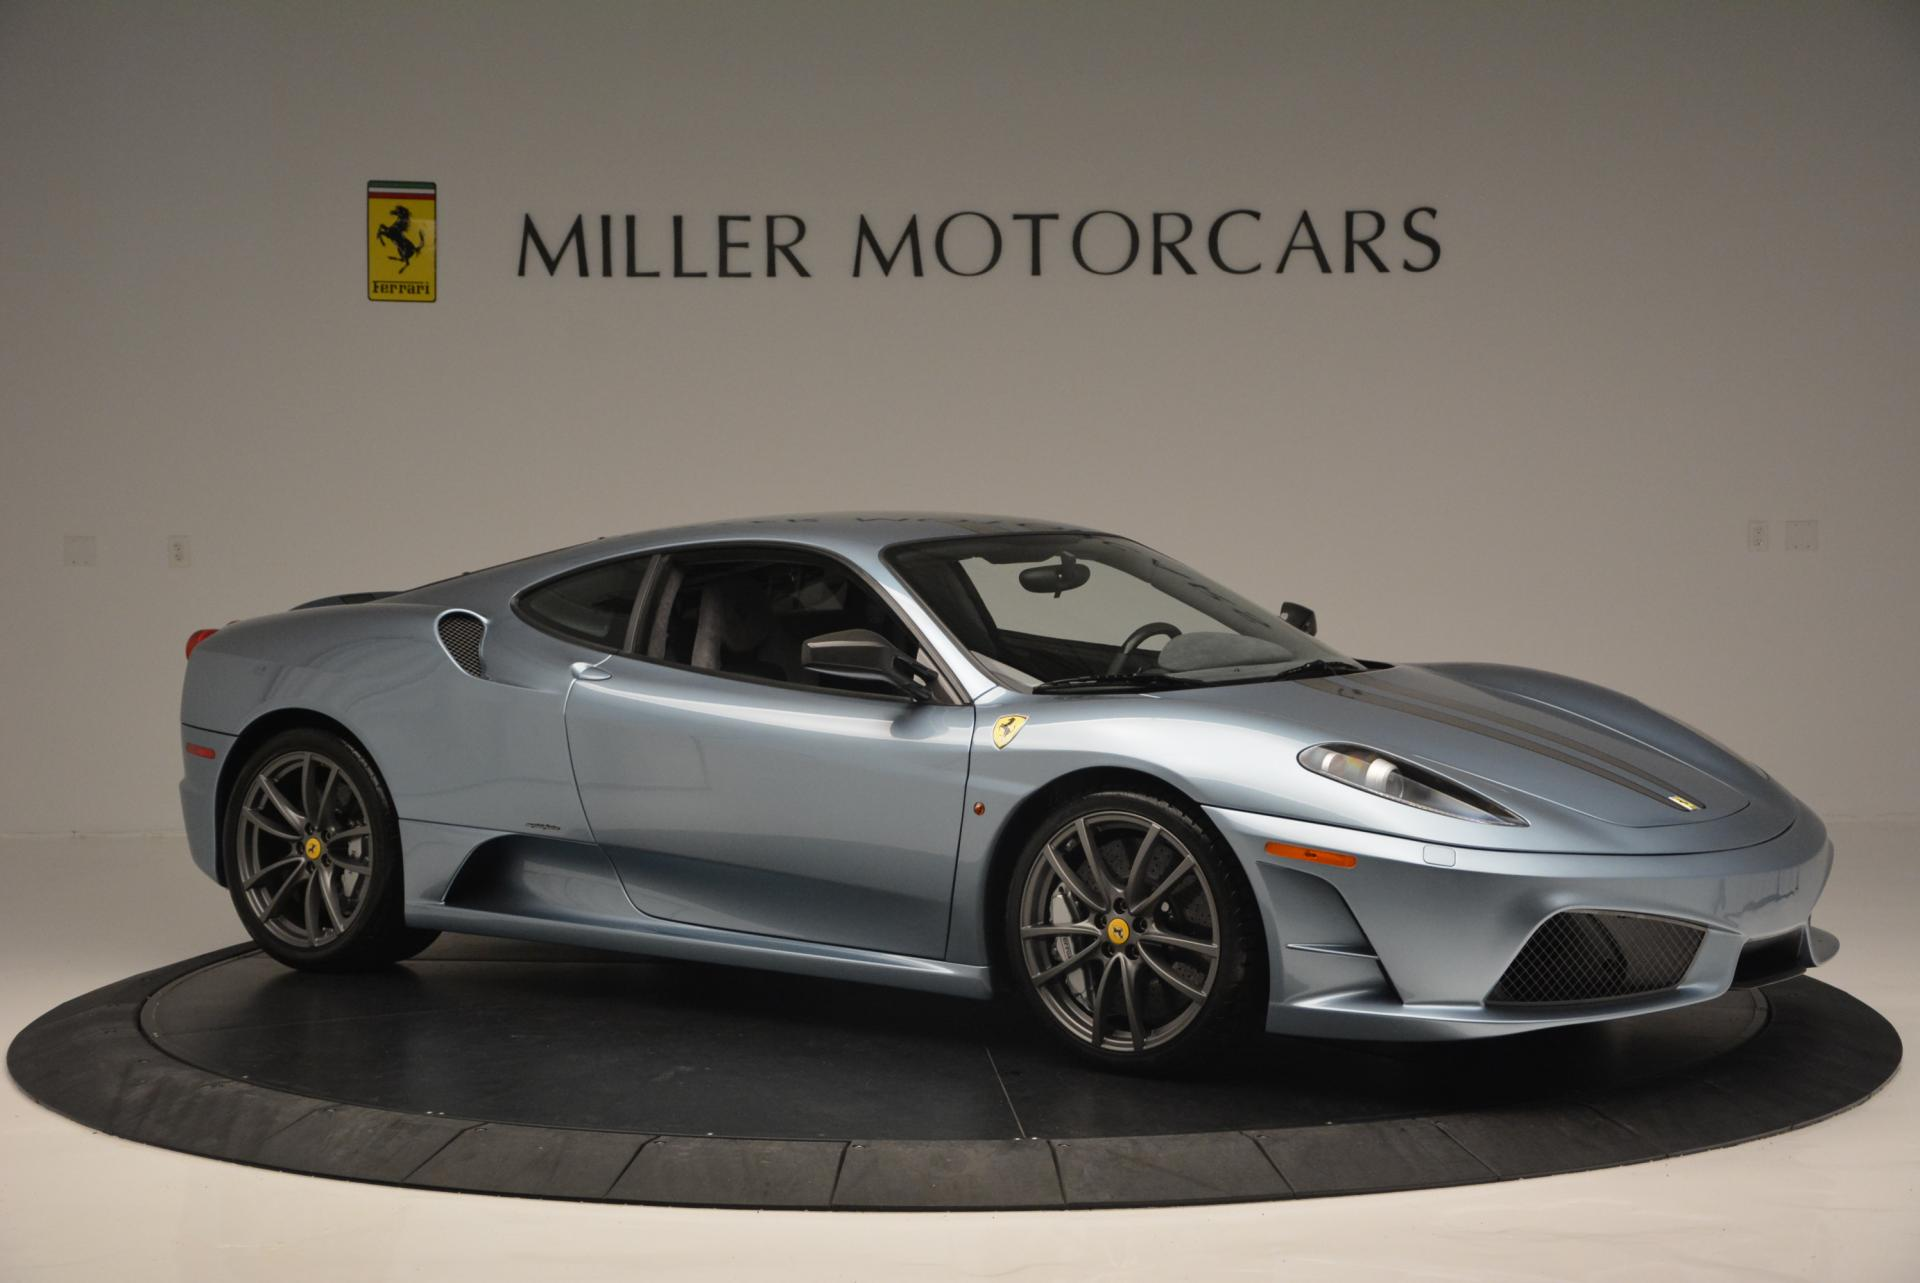 Used 2008 Ferrari F430 Scuderia For Sale In Greenwich, CT 146_p10